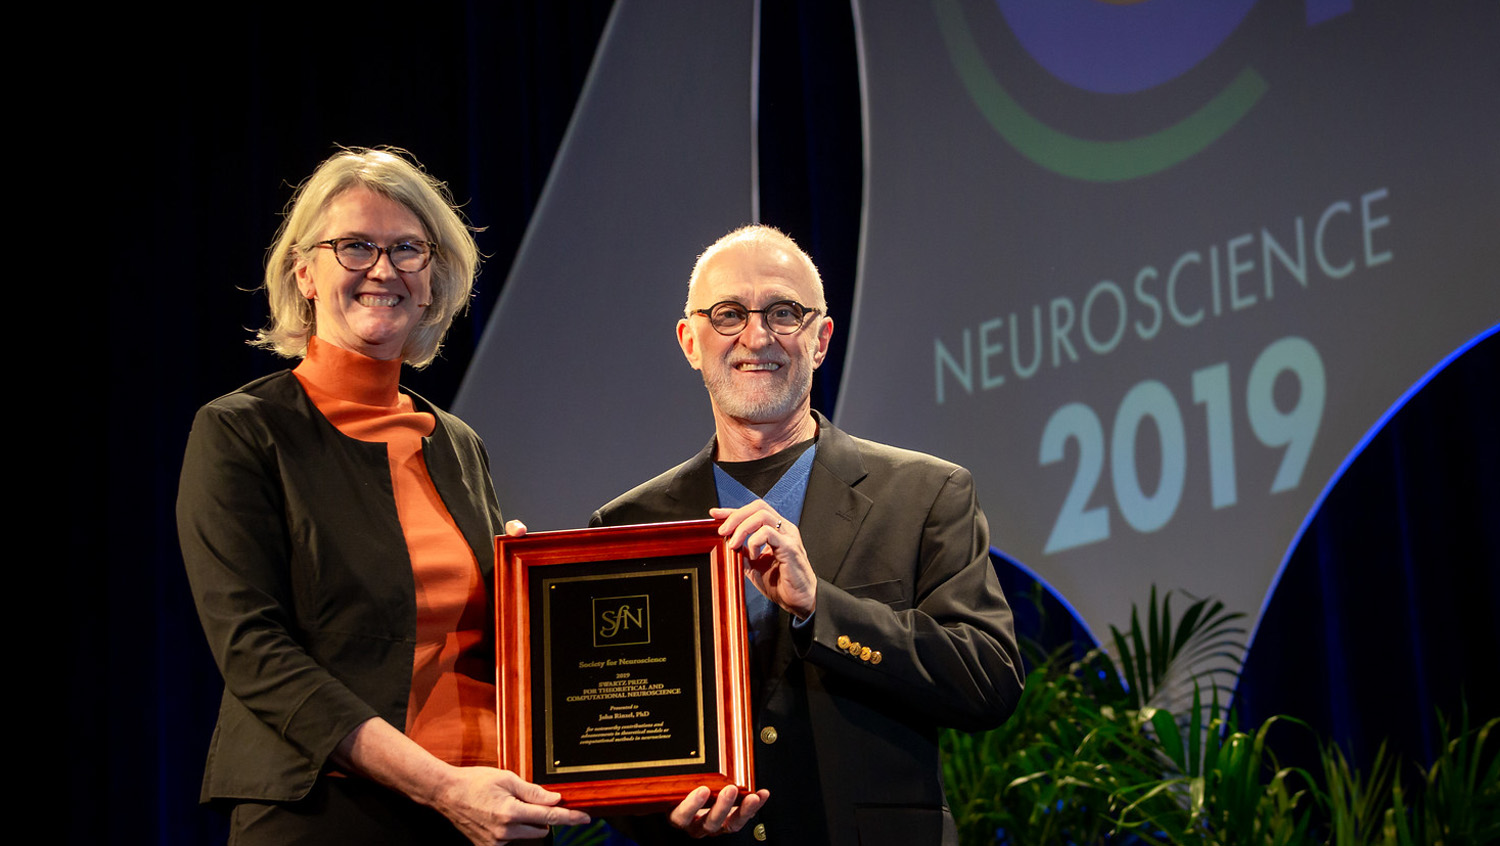 John Rinzel, PhD (right), of New York University, accepts the Swartz Prize for Theoretical and Computational Neuroscience